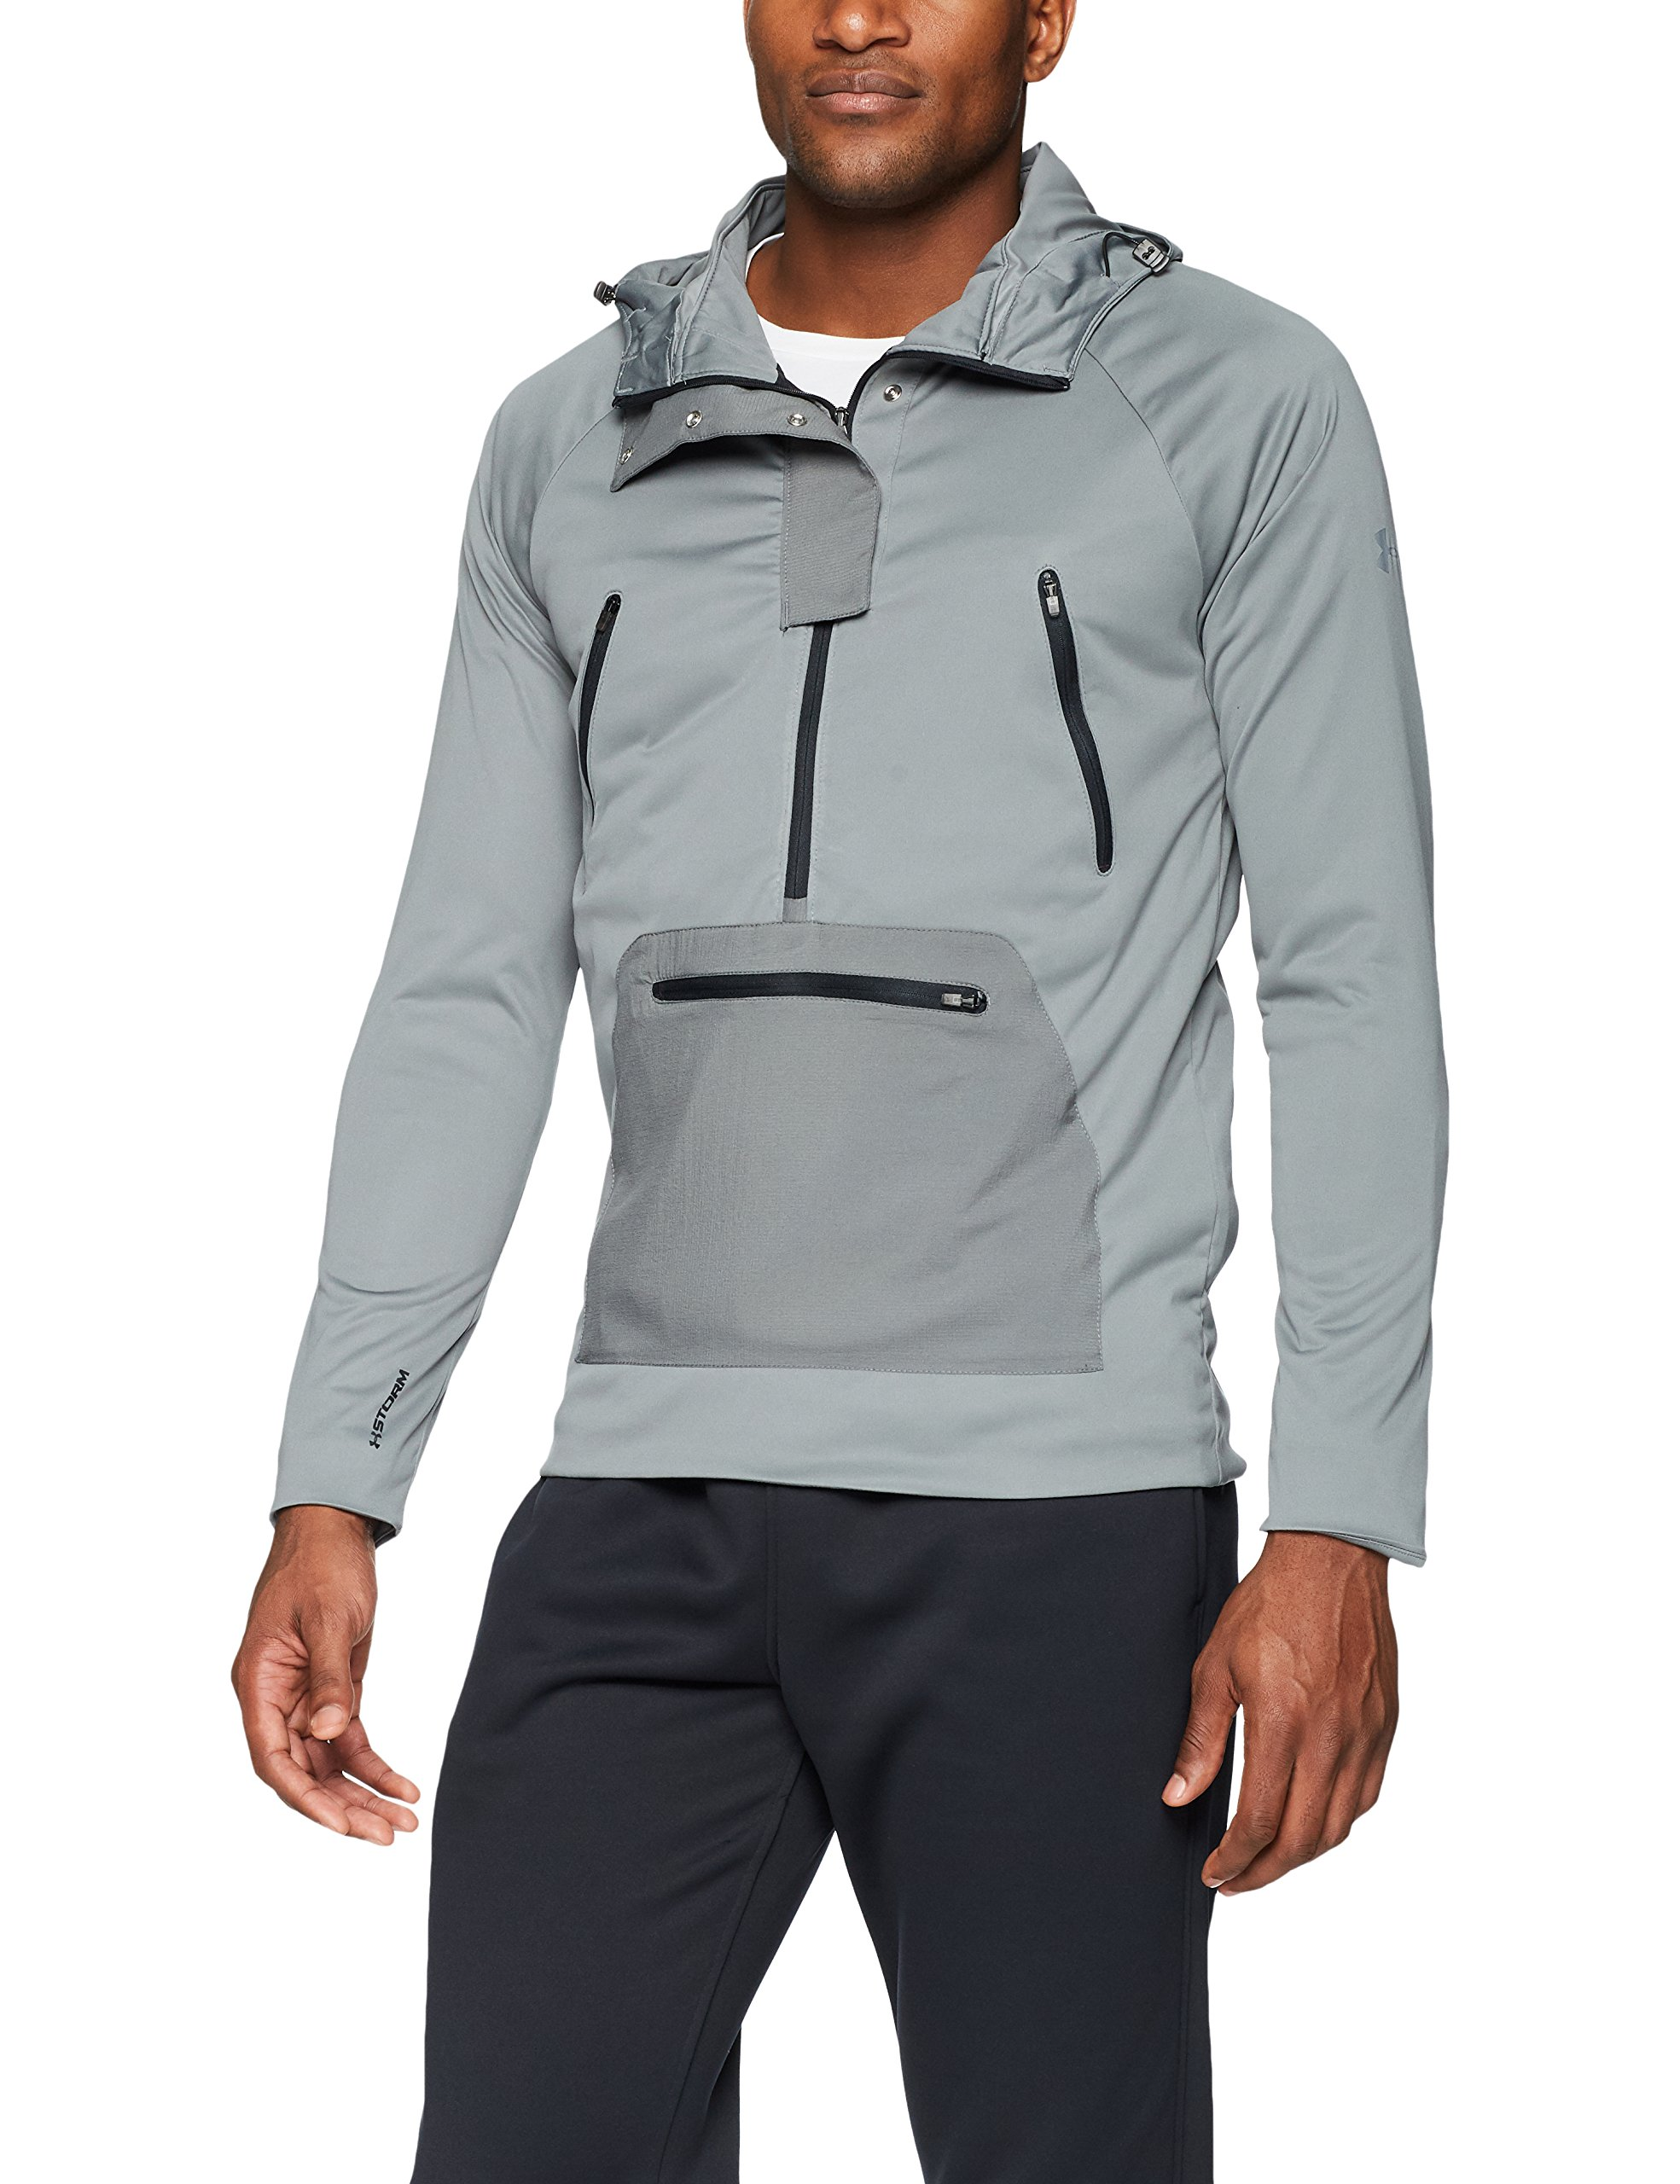 Under Armour Men's Storm Define The Anorak Jacket , Clay Green (709)/Reflective, Large by Under Armour (Image #1)